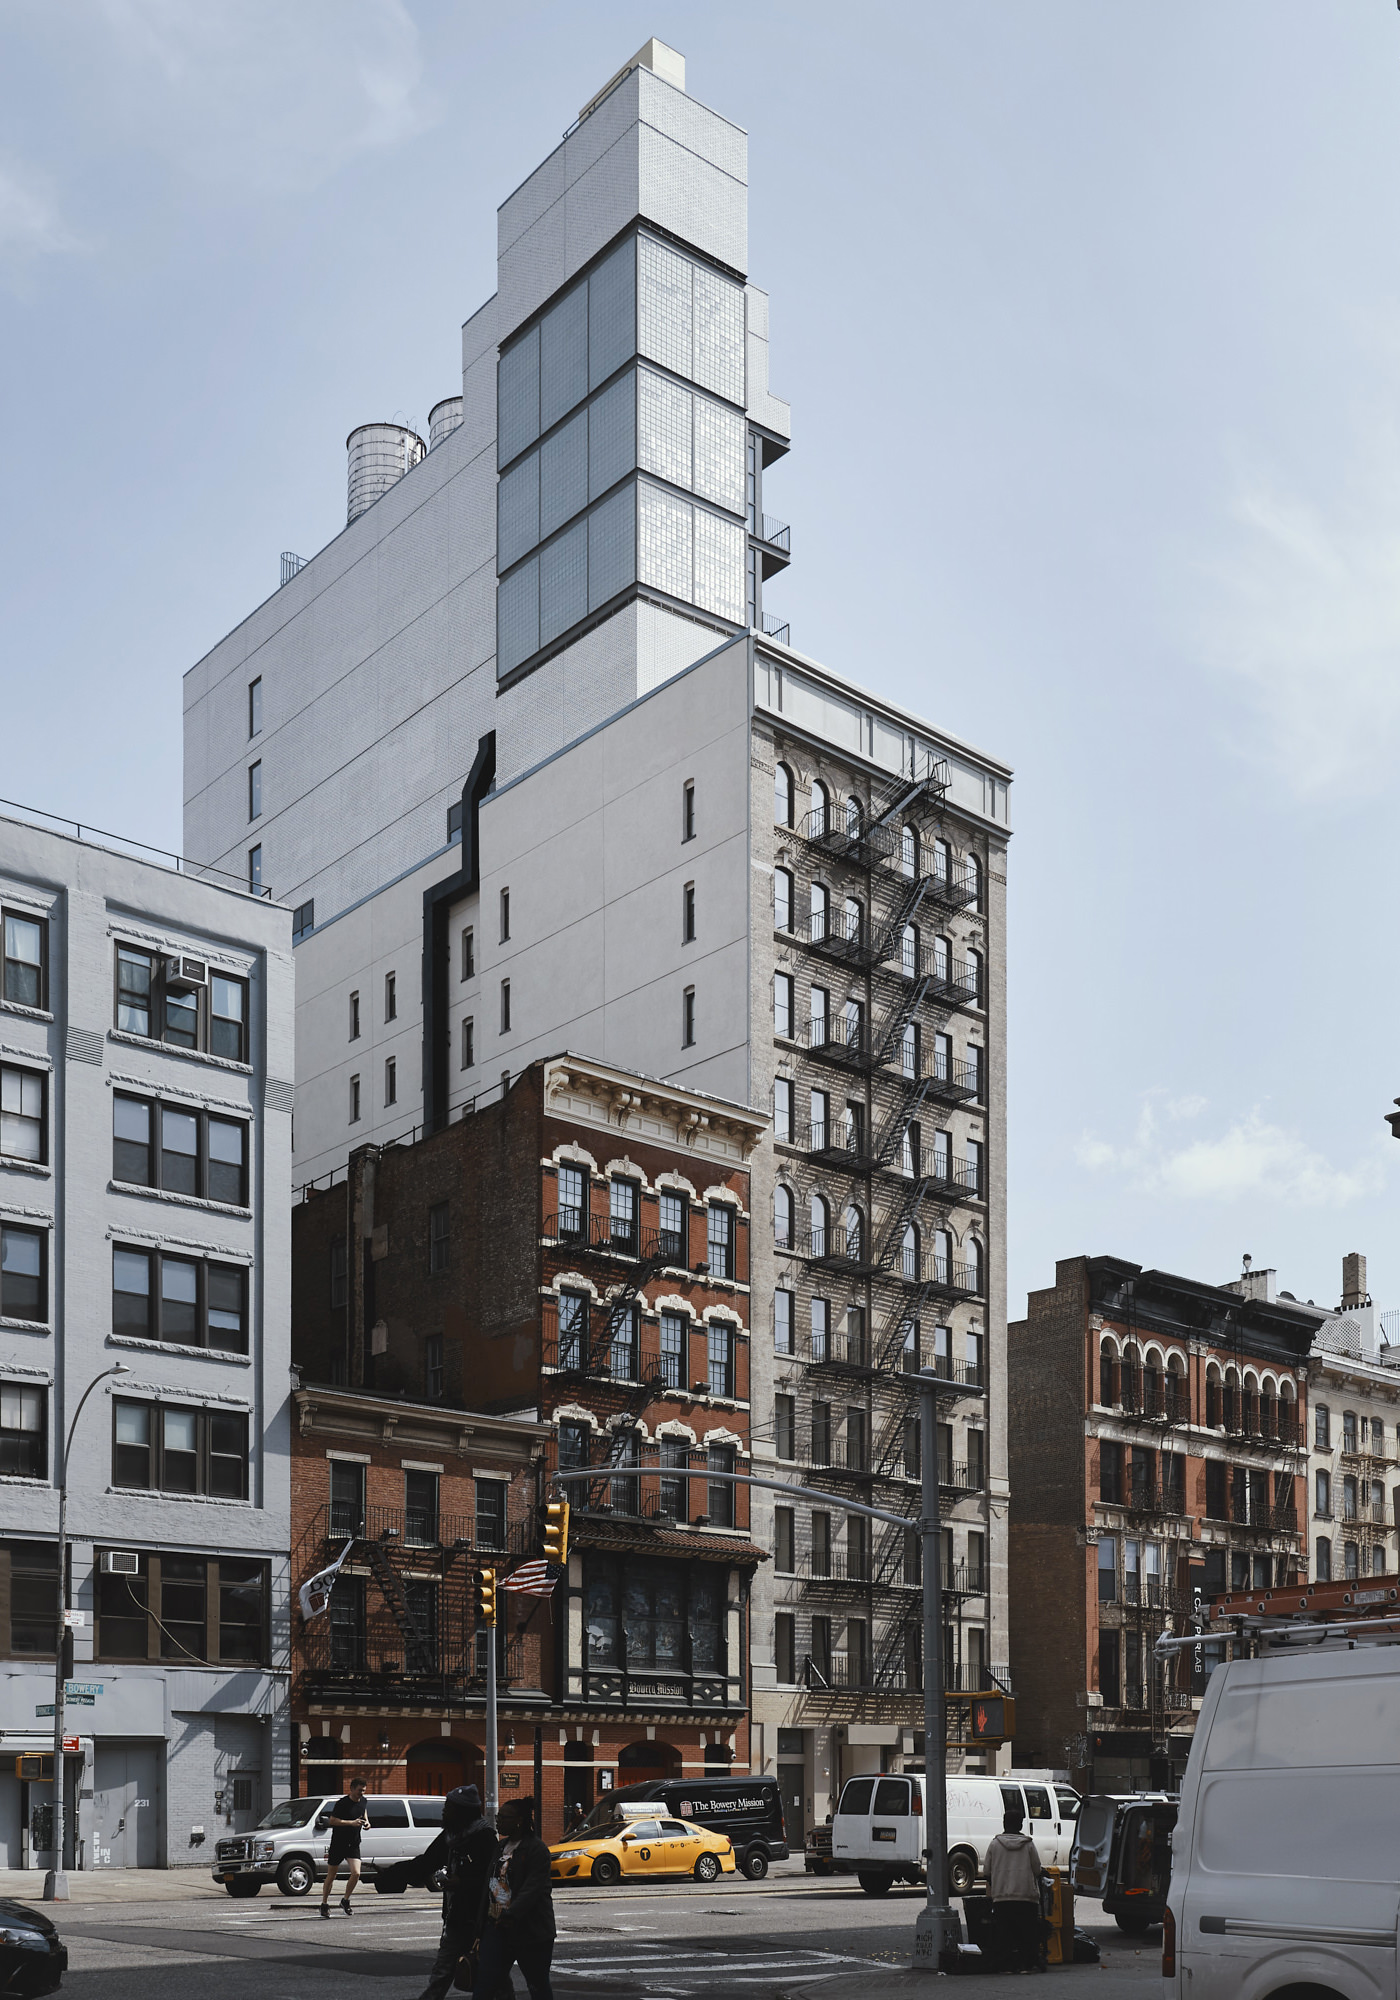 Adrian Gaut Photographie Hotel New York Sister City NYC